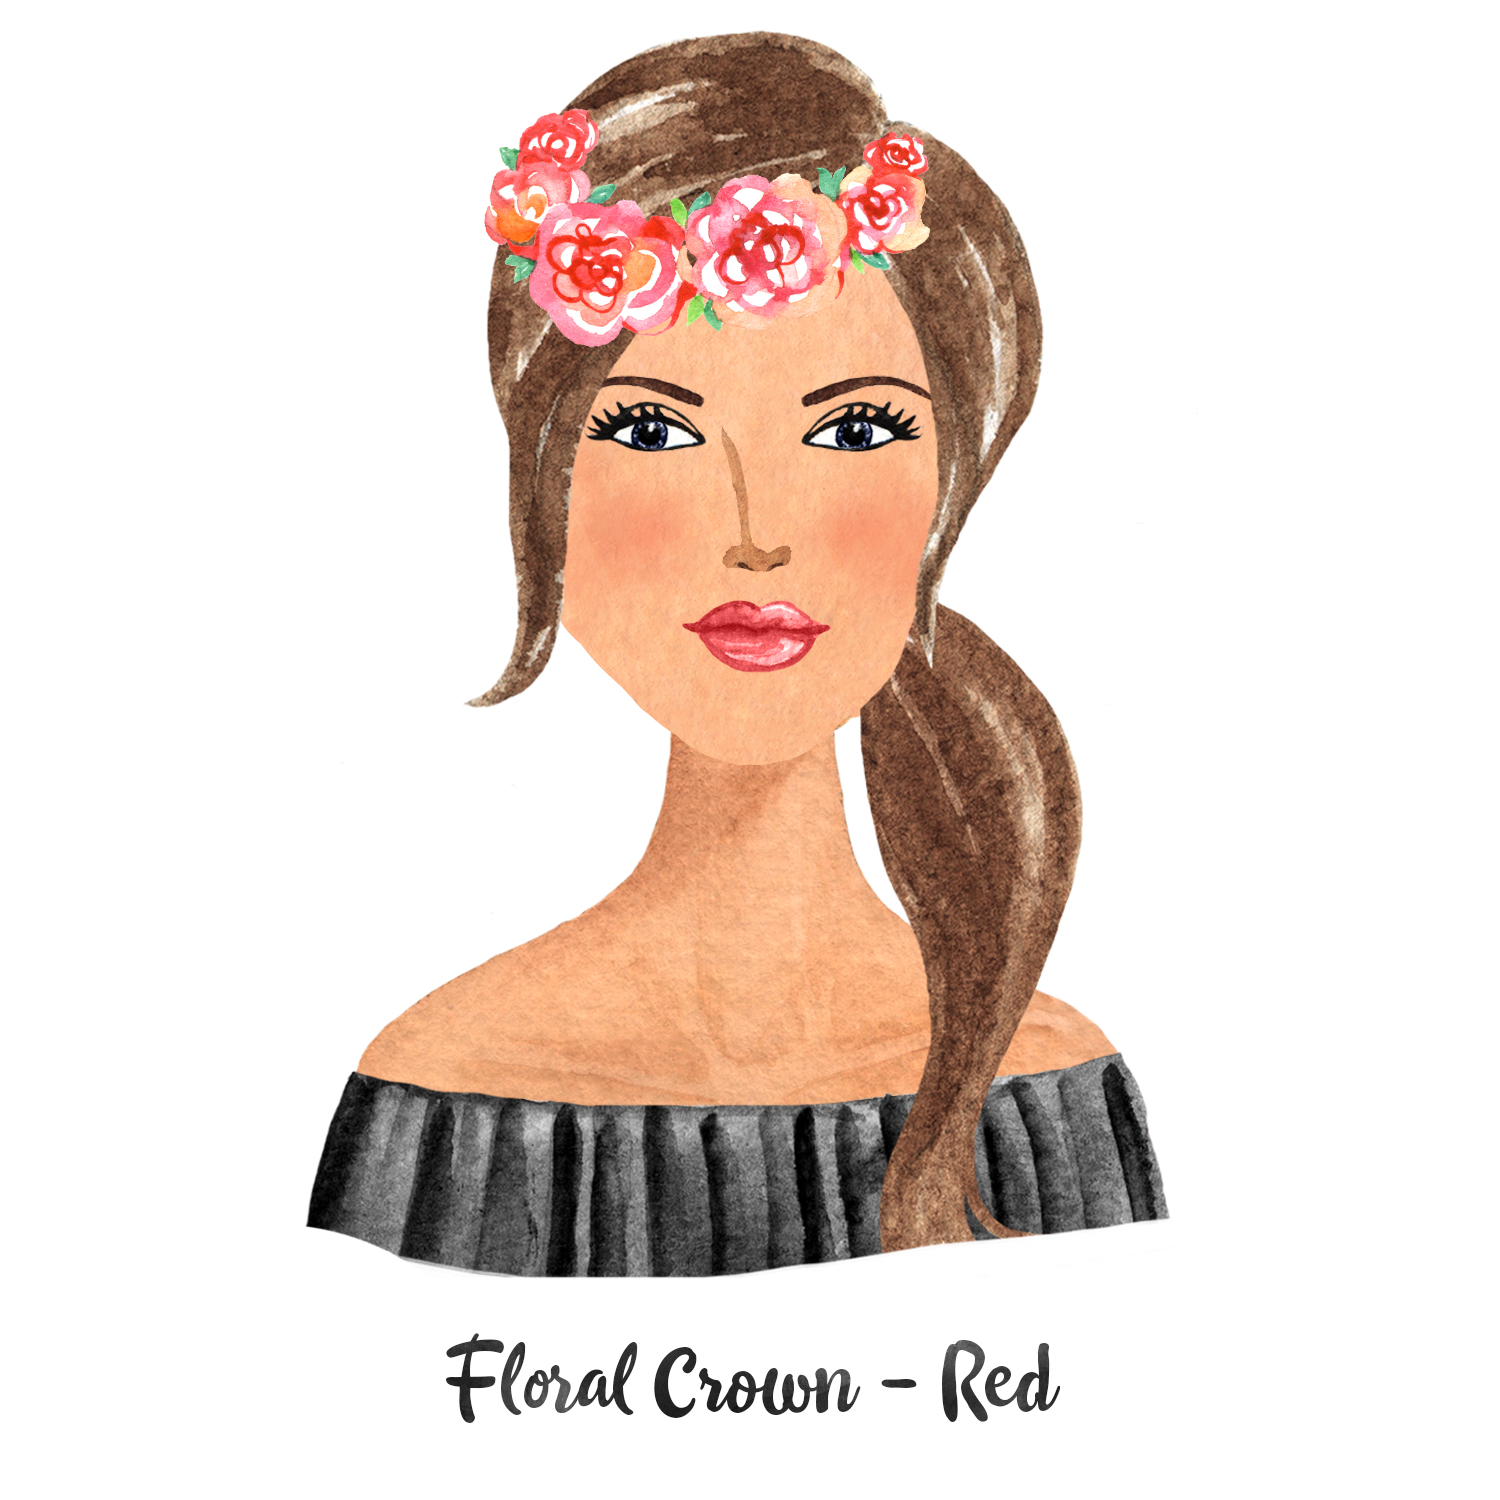 Floral Crown Red.jpg